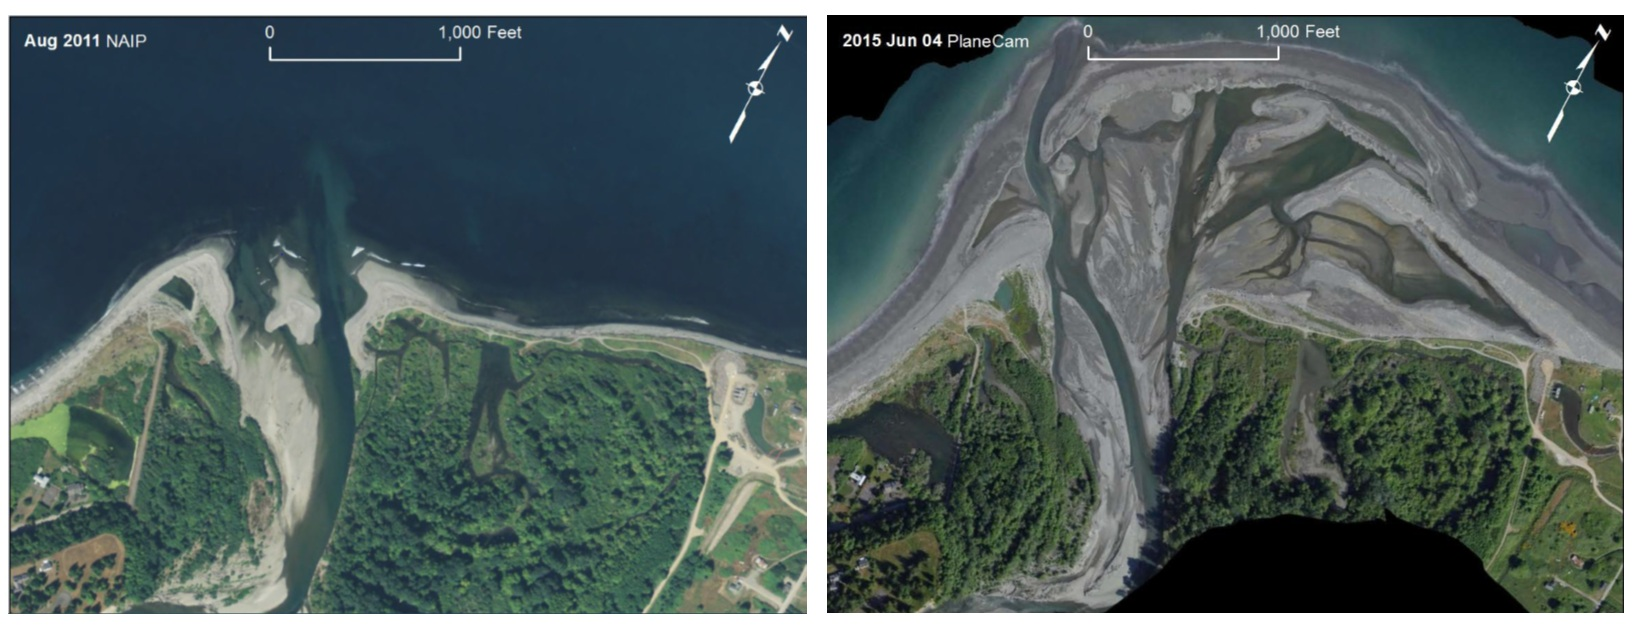 Right: Washington state's Elwha river delta pictured in 2011 at the beginning of a large scale dam removal project. Left: The Elwha delta in 2015 roughly 4 years after the dam removal project began. Image: psmfc.org.